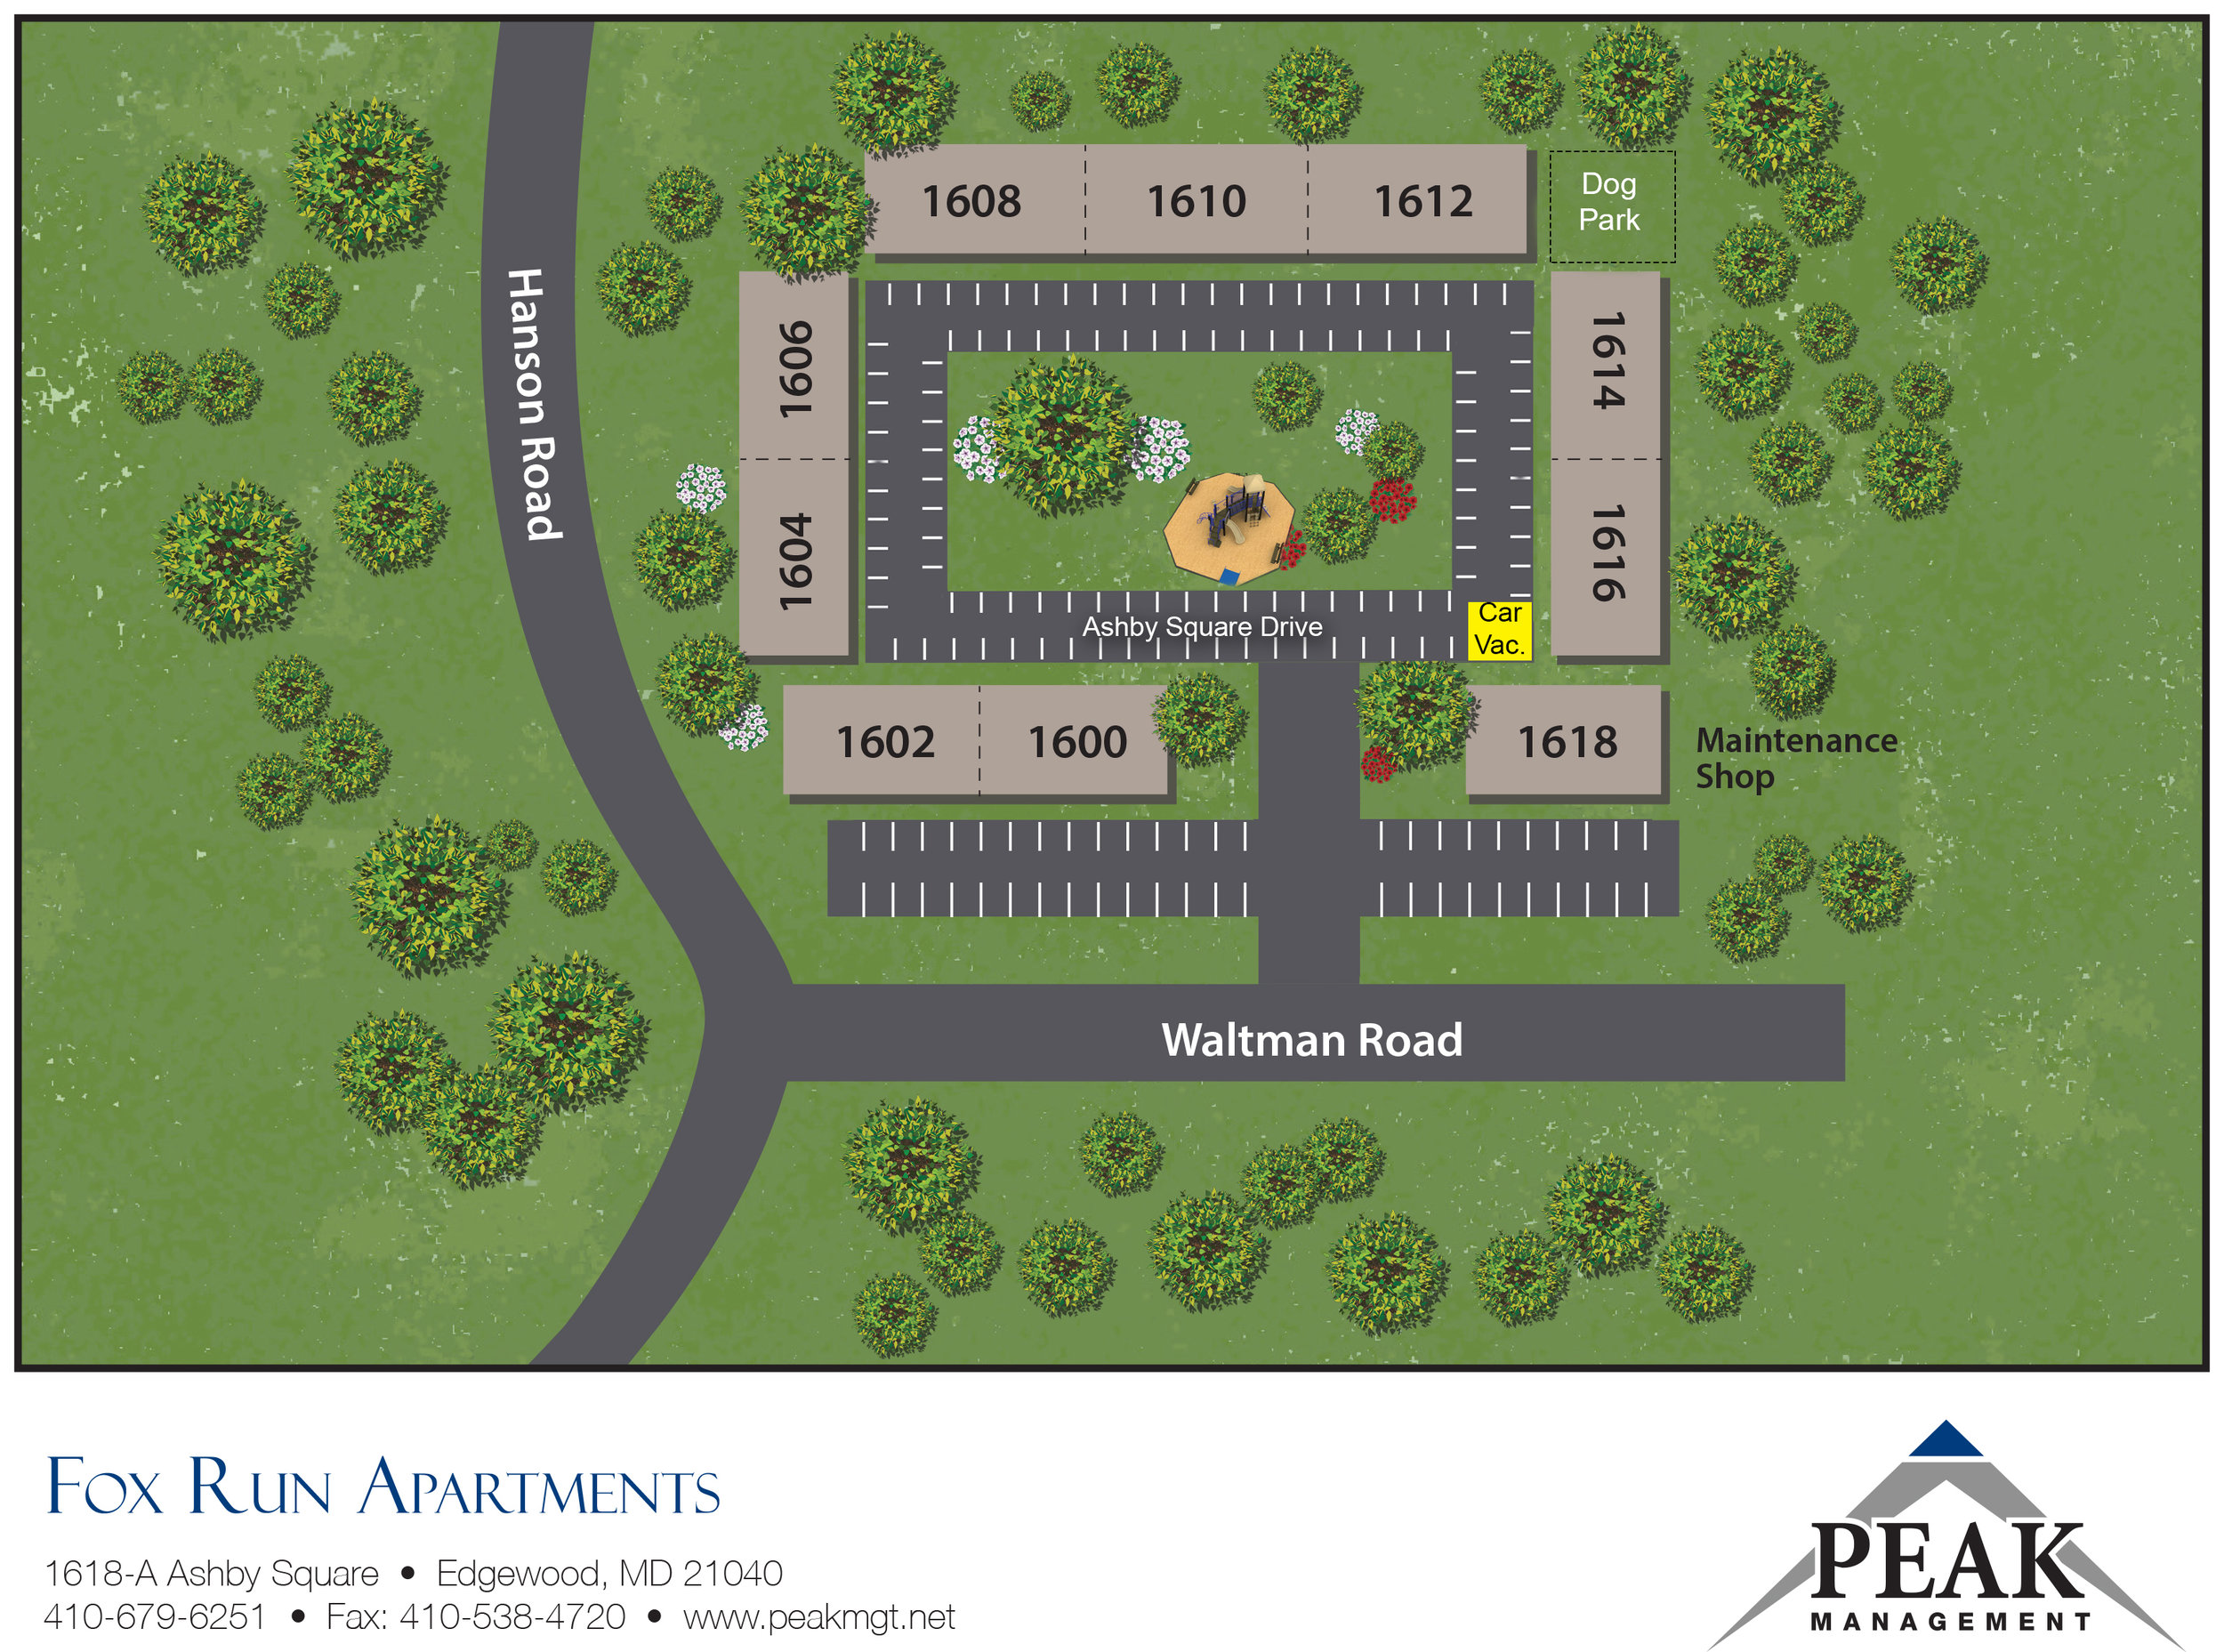 Community Map of Fox Run Apartments in Edgewood, MD